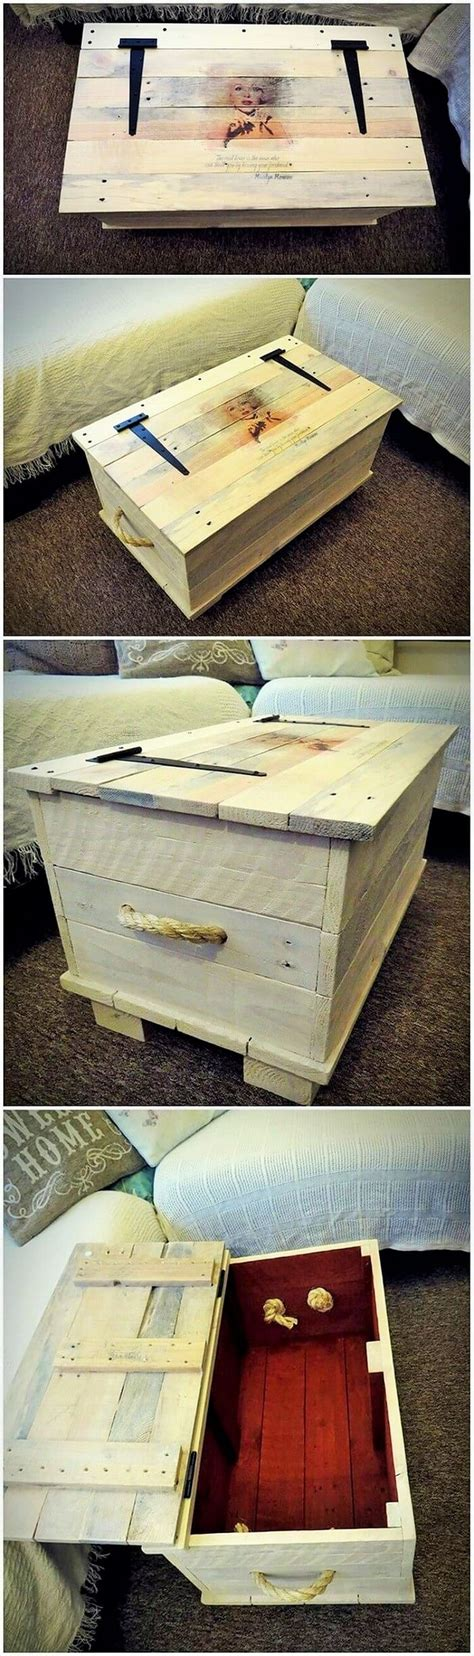 your home source wooden pallet ideas to make furniture for your home 1001